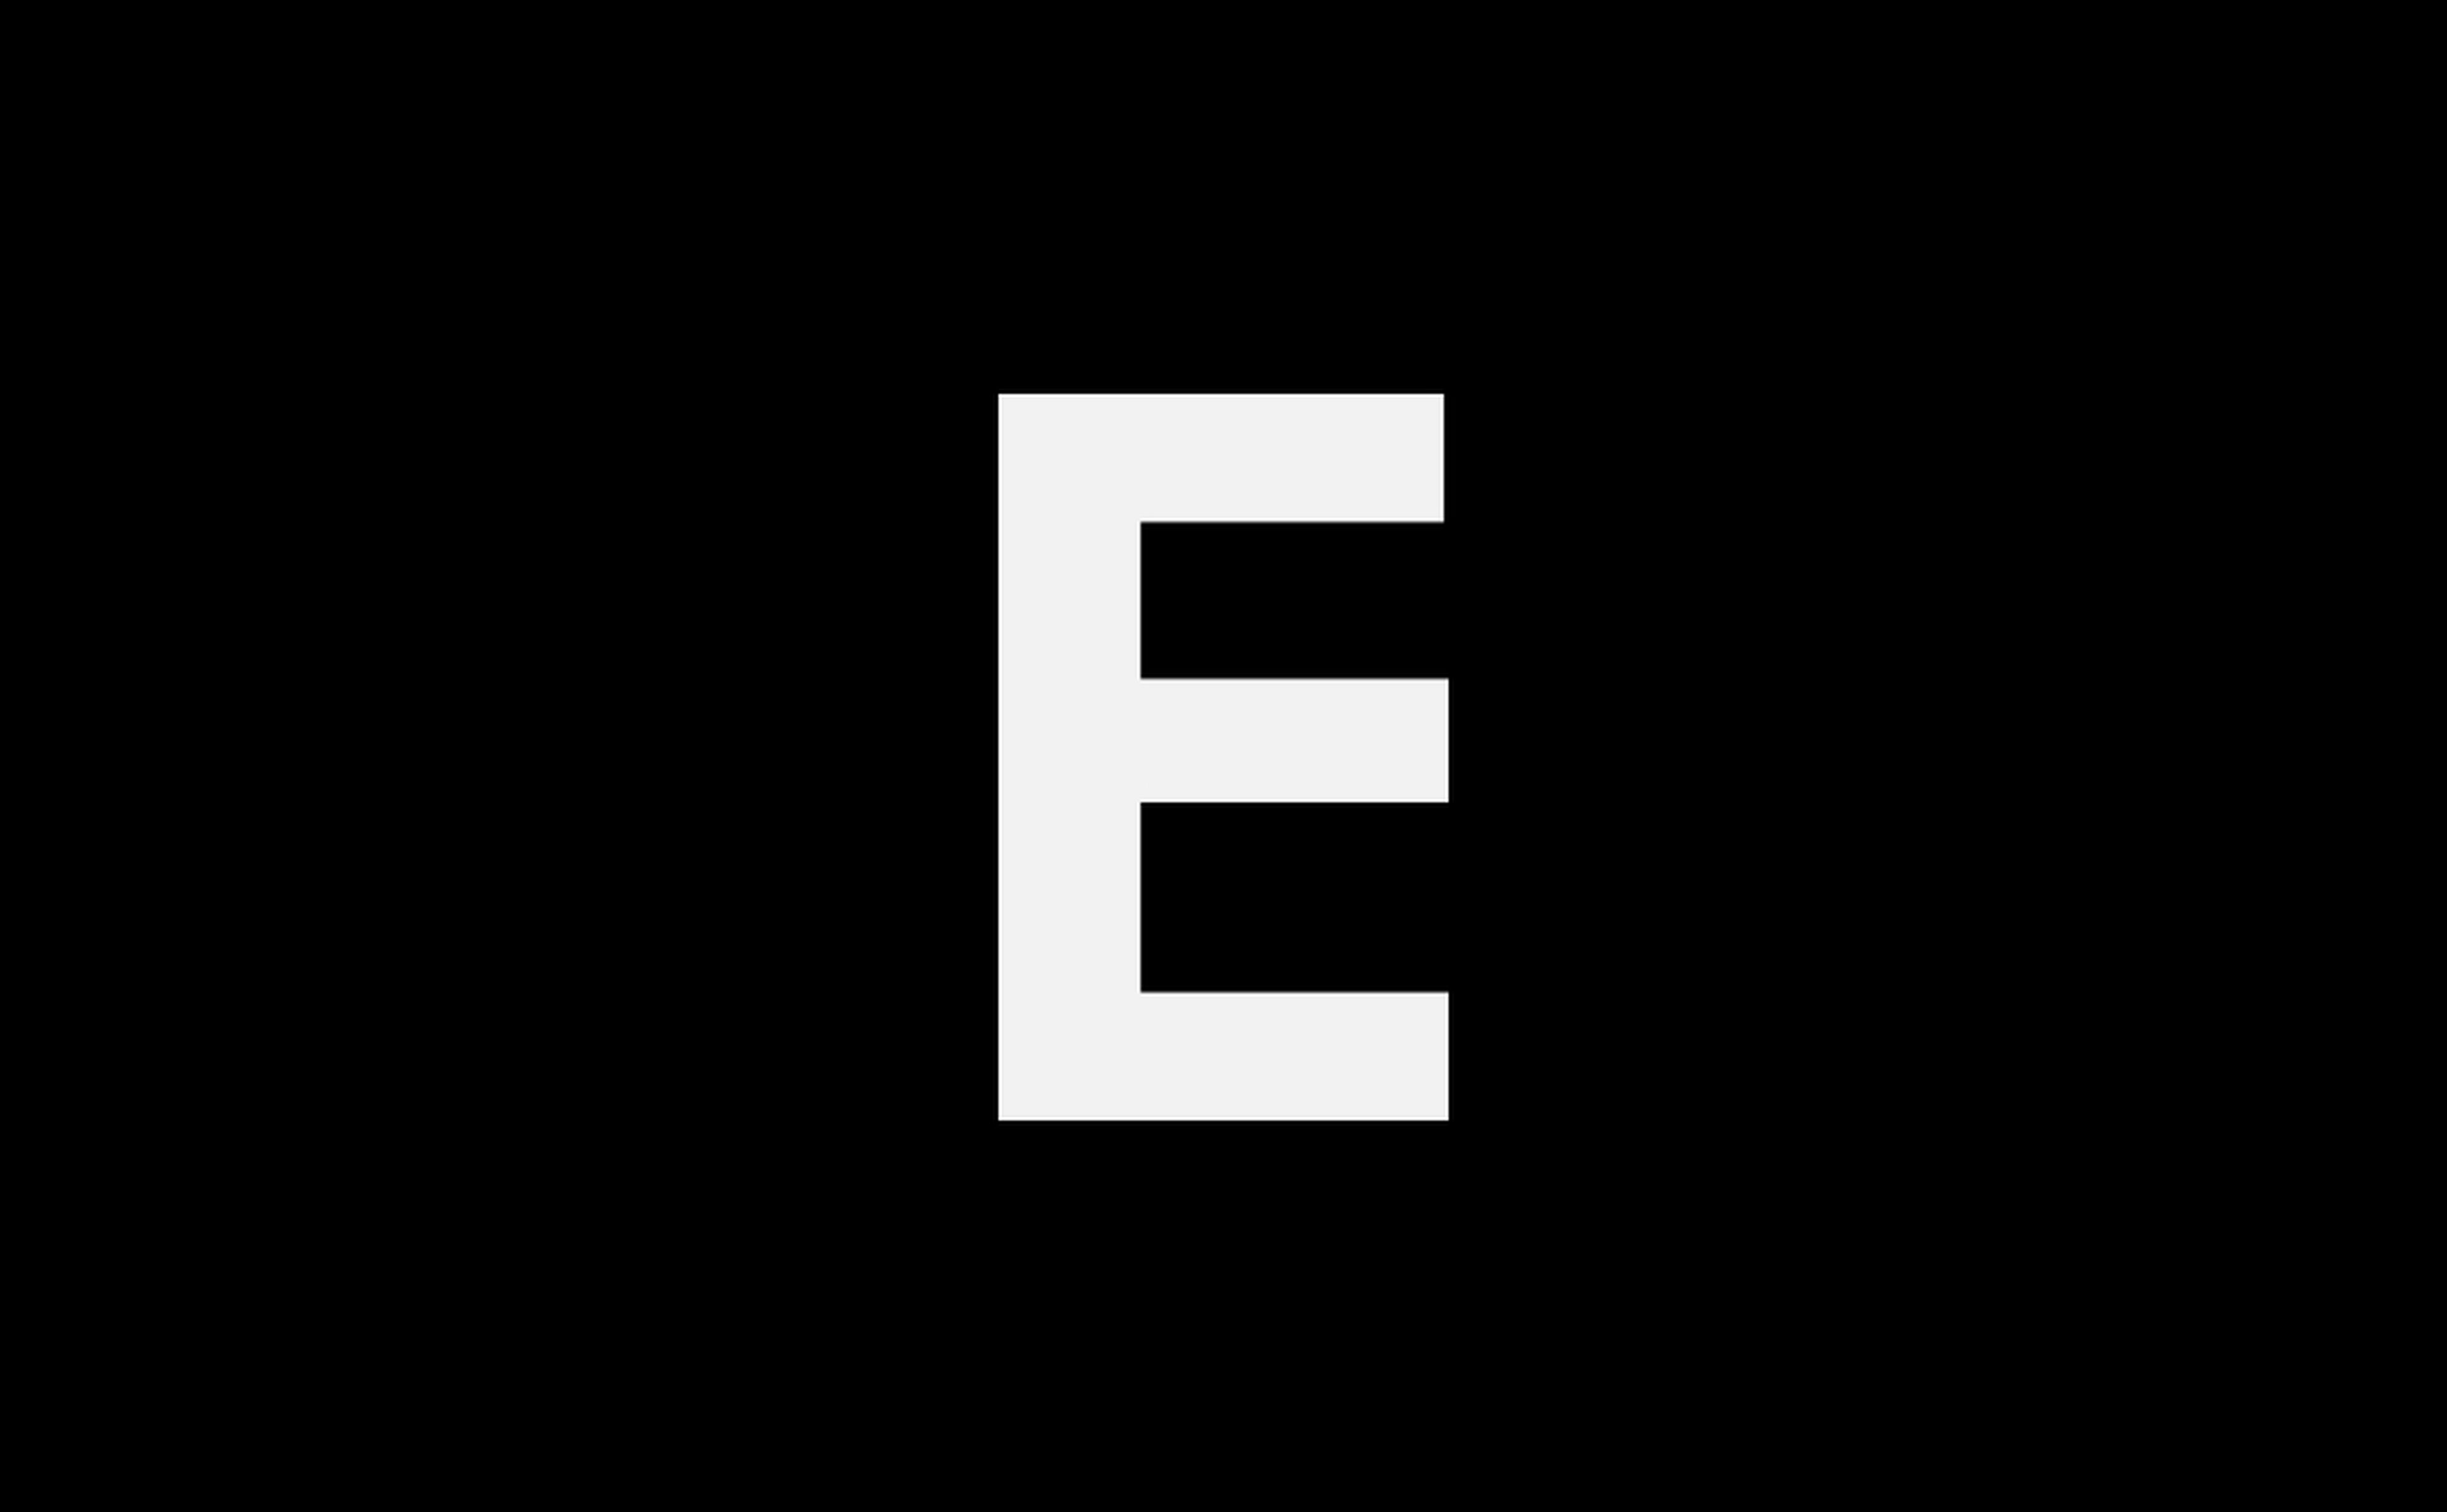 illuminated, night, street, real people, road, large group of people, outdoors, city life, high angle view, nightlife, city, men, crowd, people